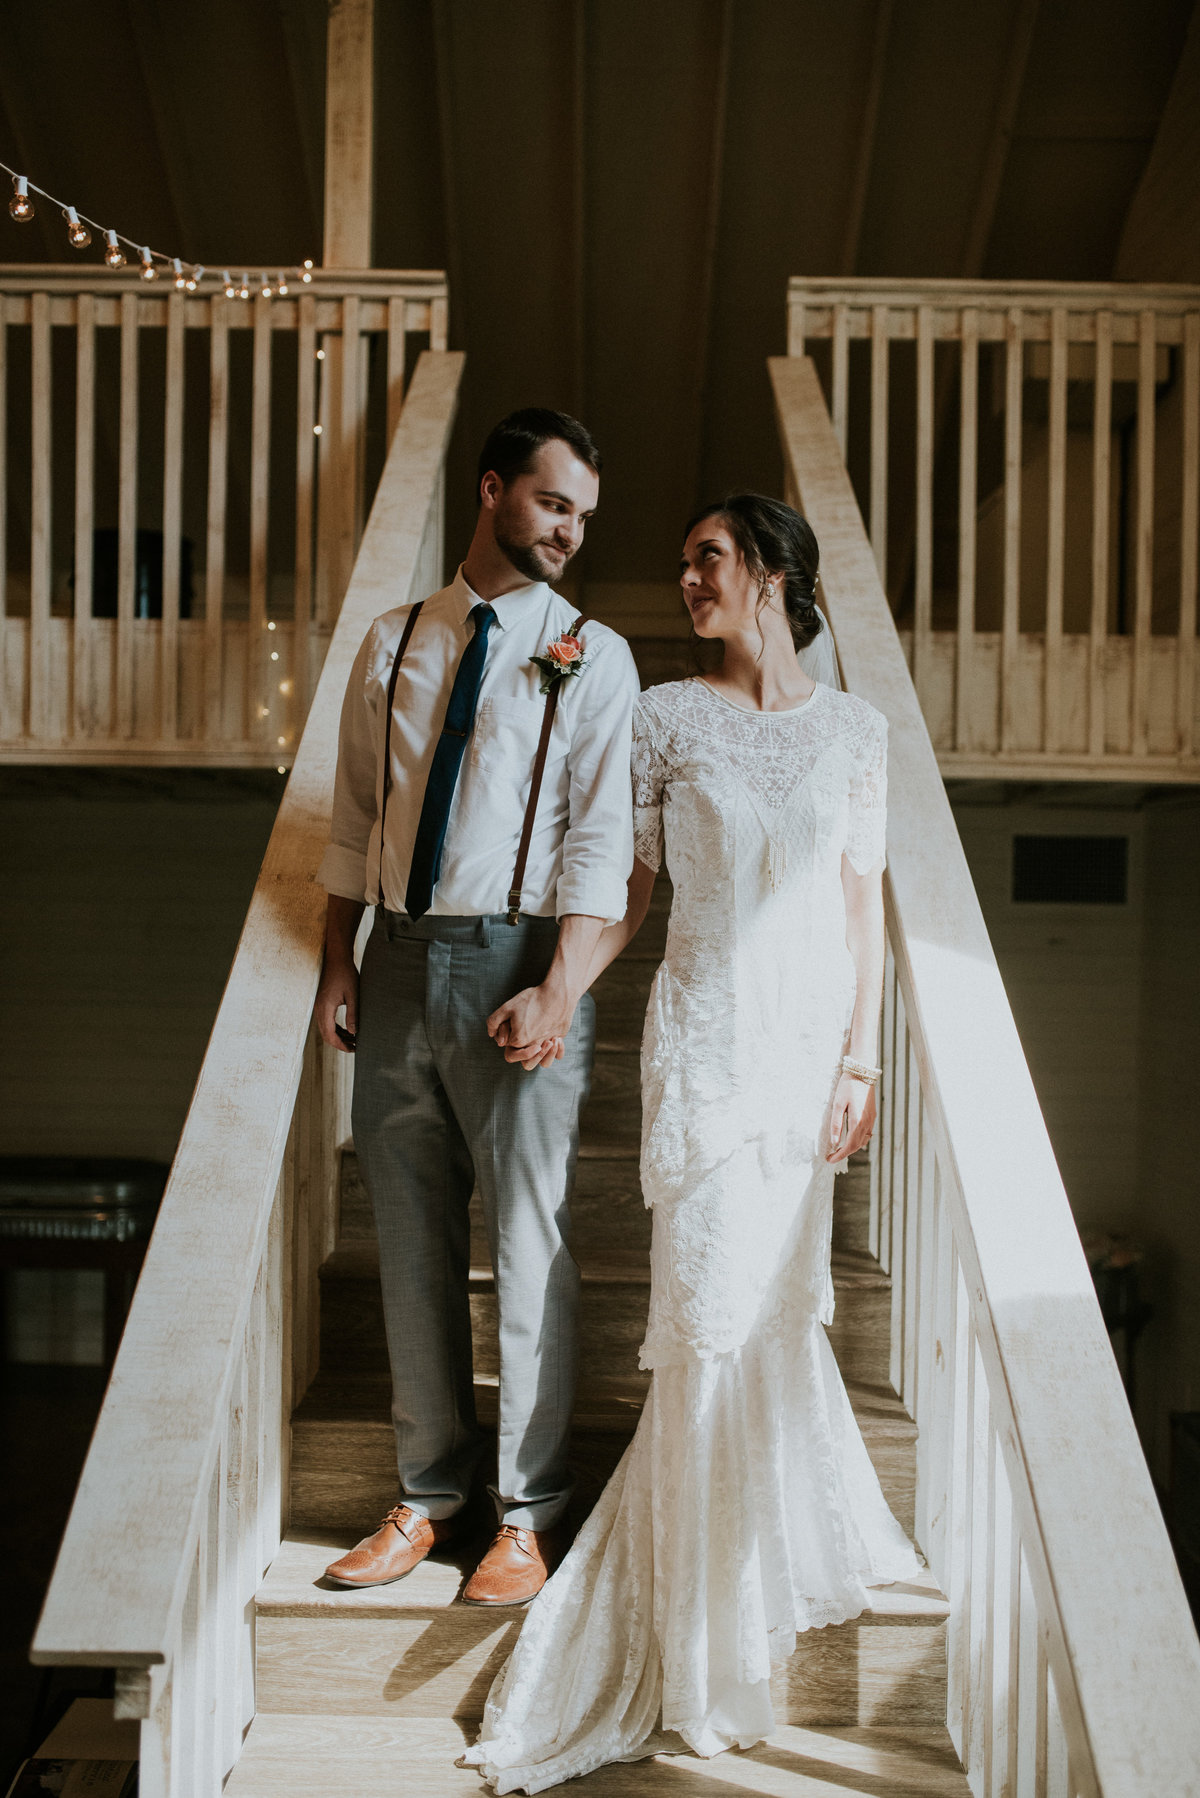 Couple standing on a staircase